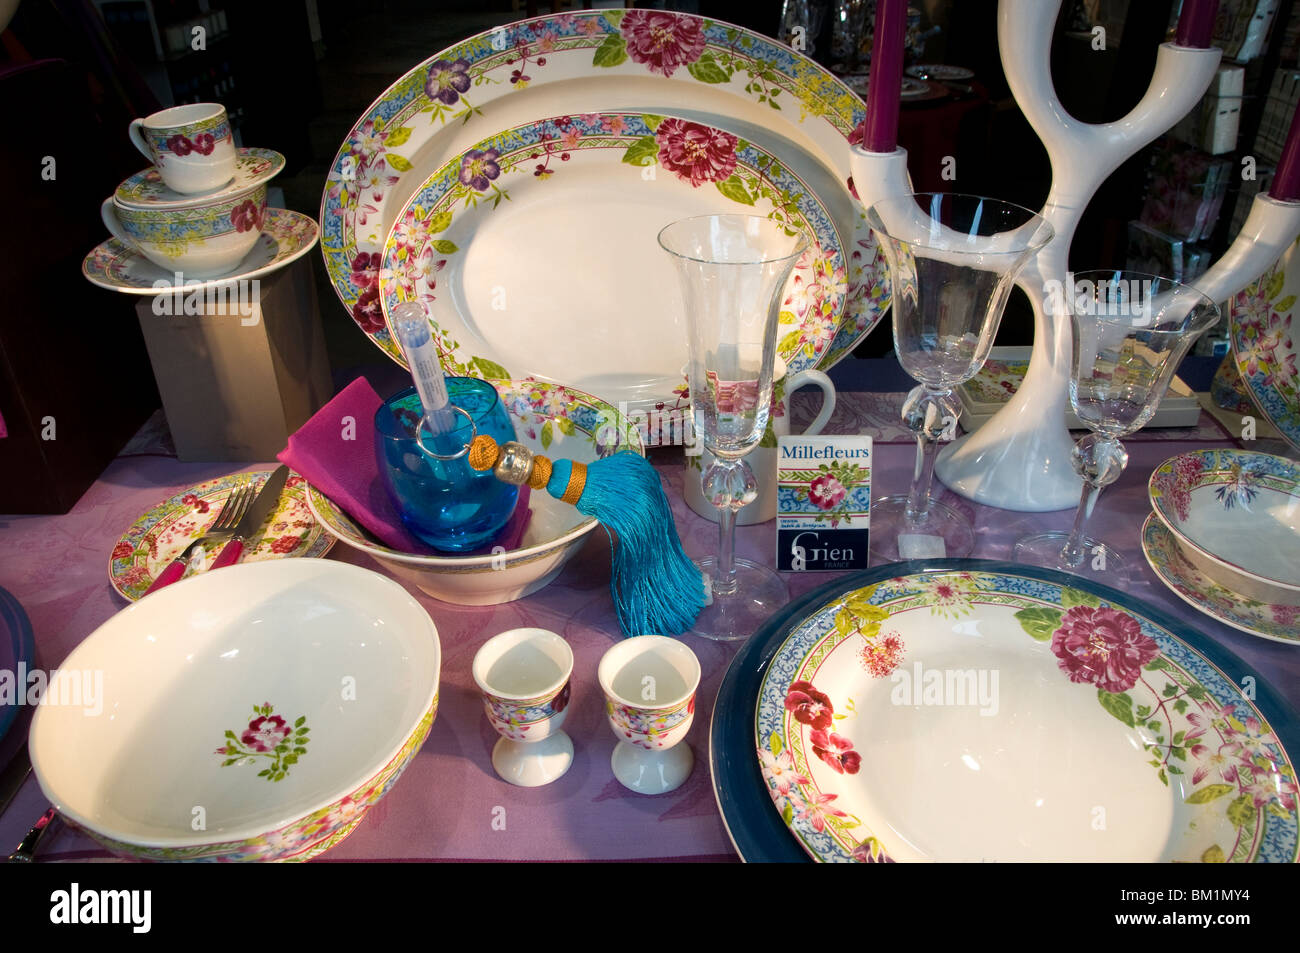 Brussels Belgium dinner tea set plates diner - Stock Image